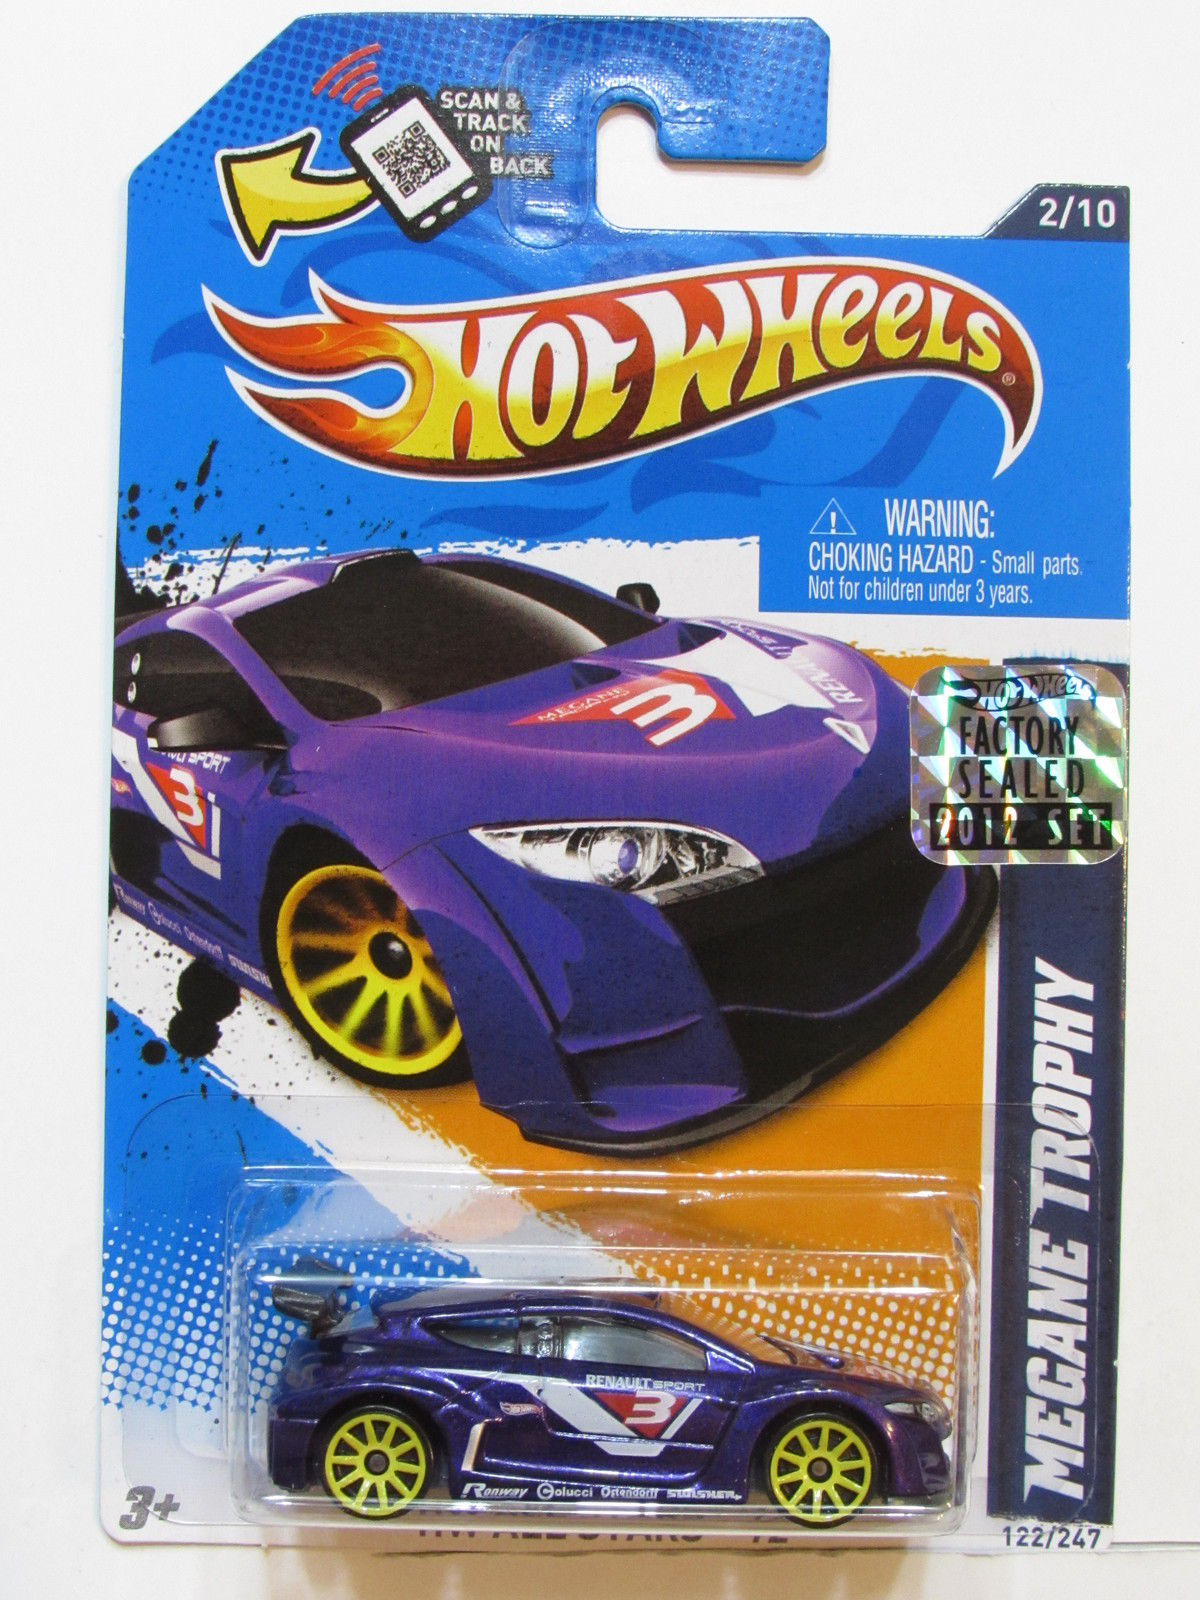 HOT WHEELS 2012 HW ALL STARS MEGANE TROPHY FACTORY SEALED